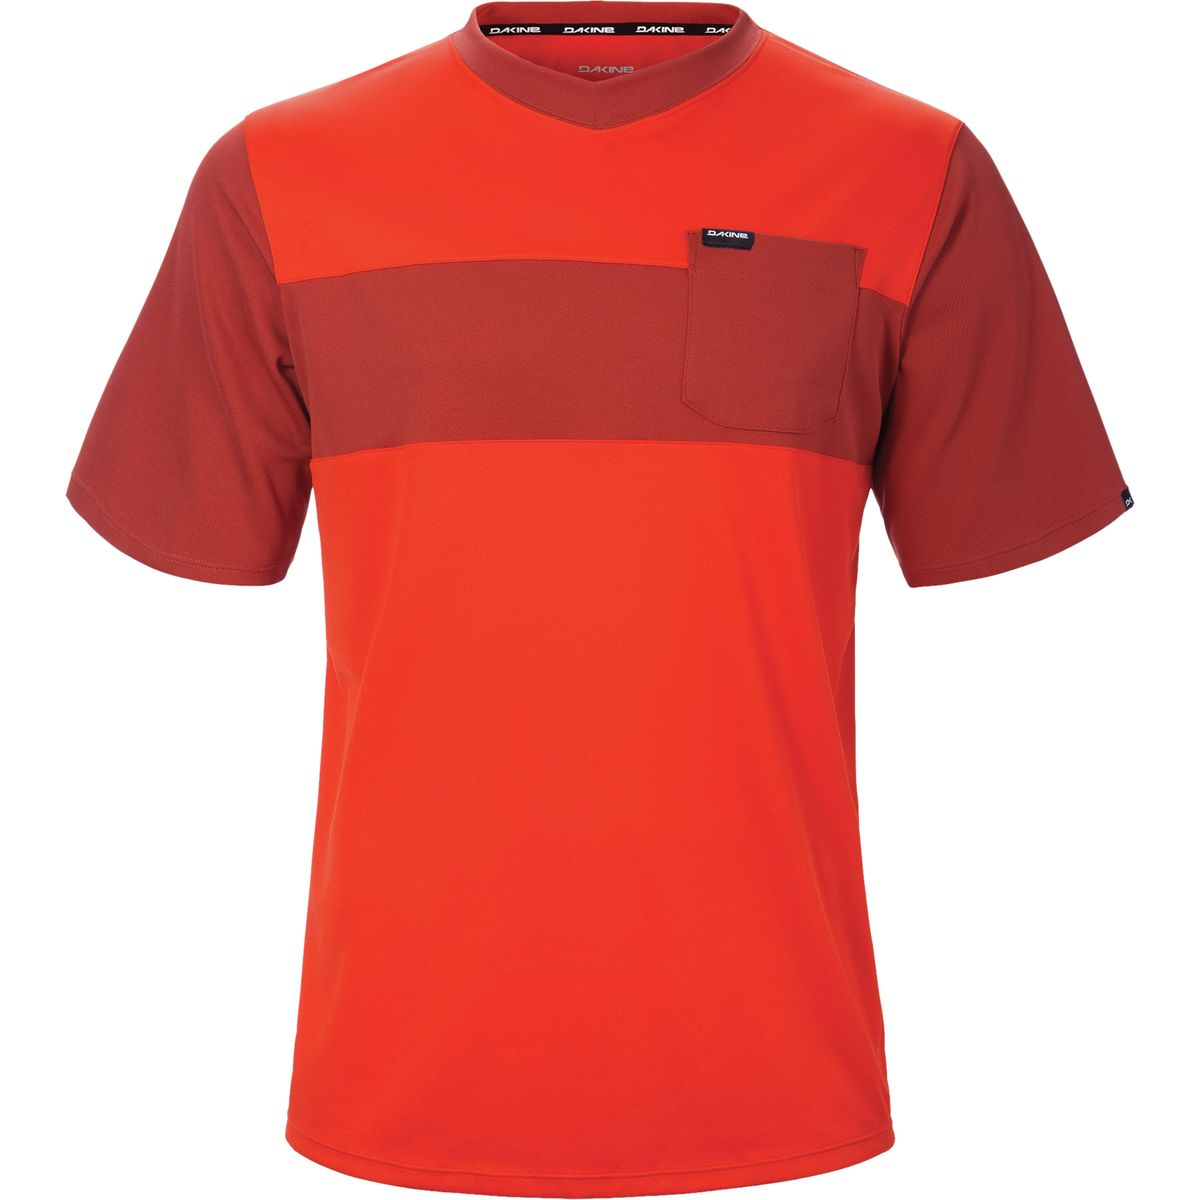 MAILLOT ROUGE HOMME 